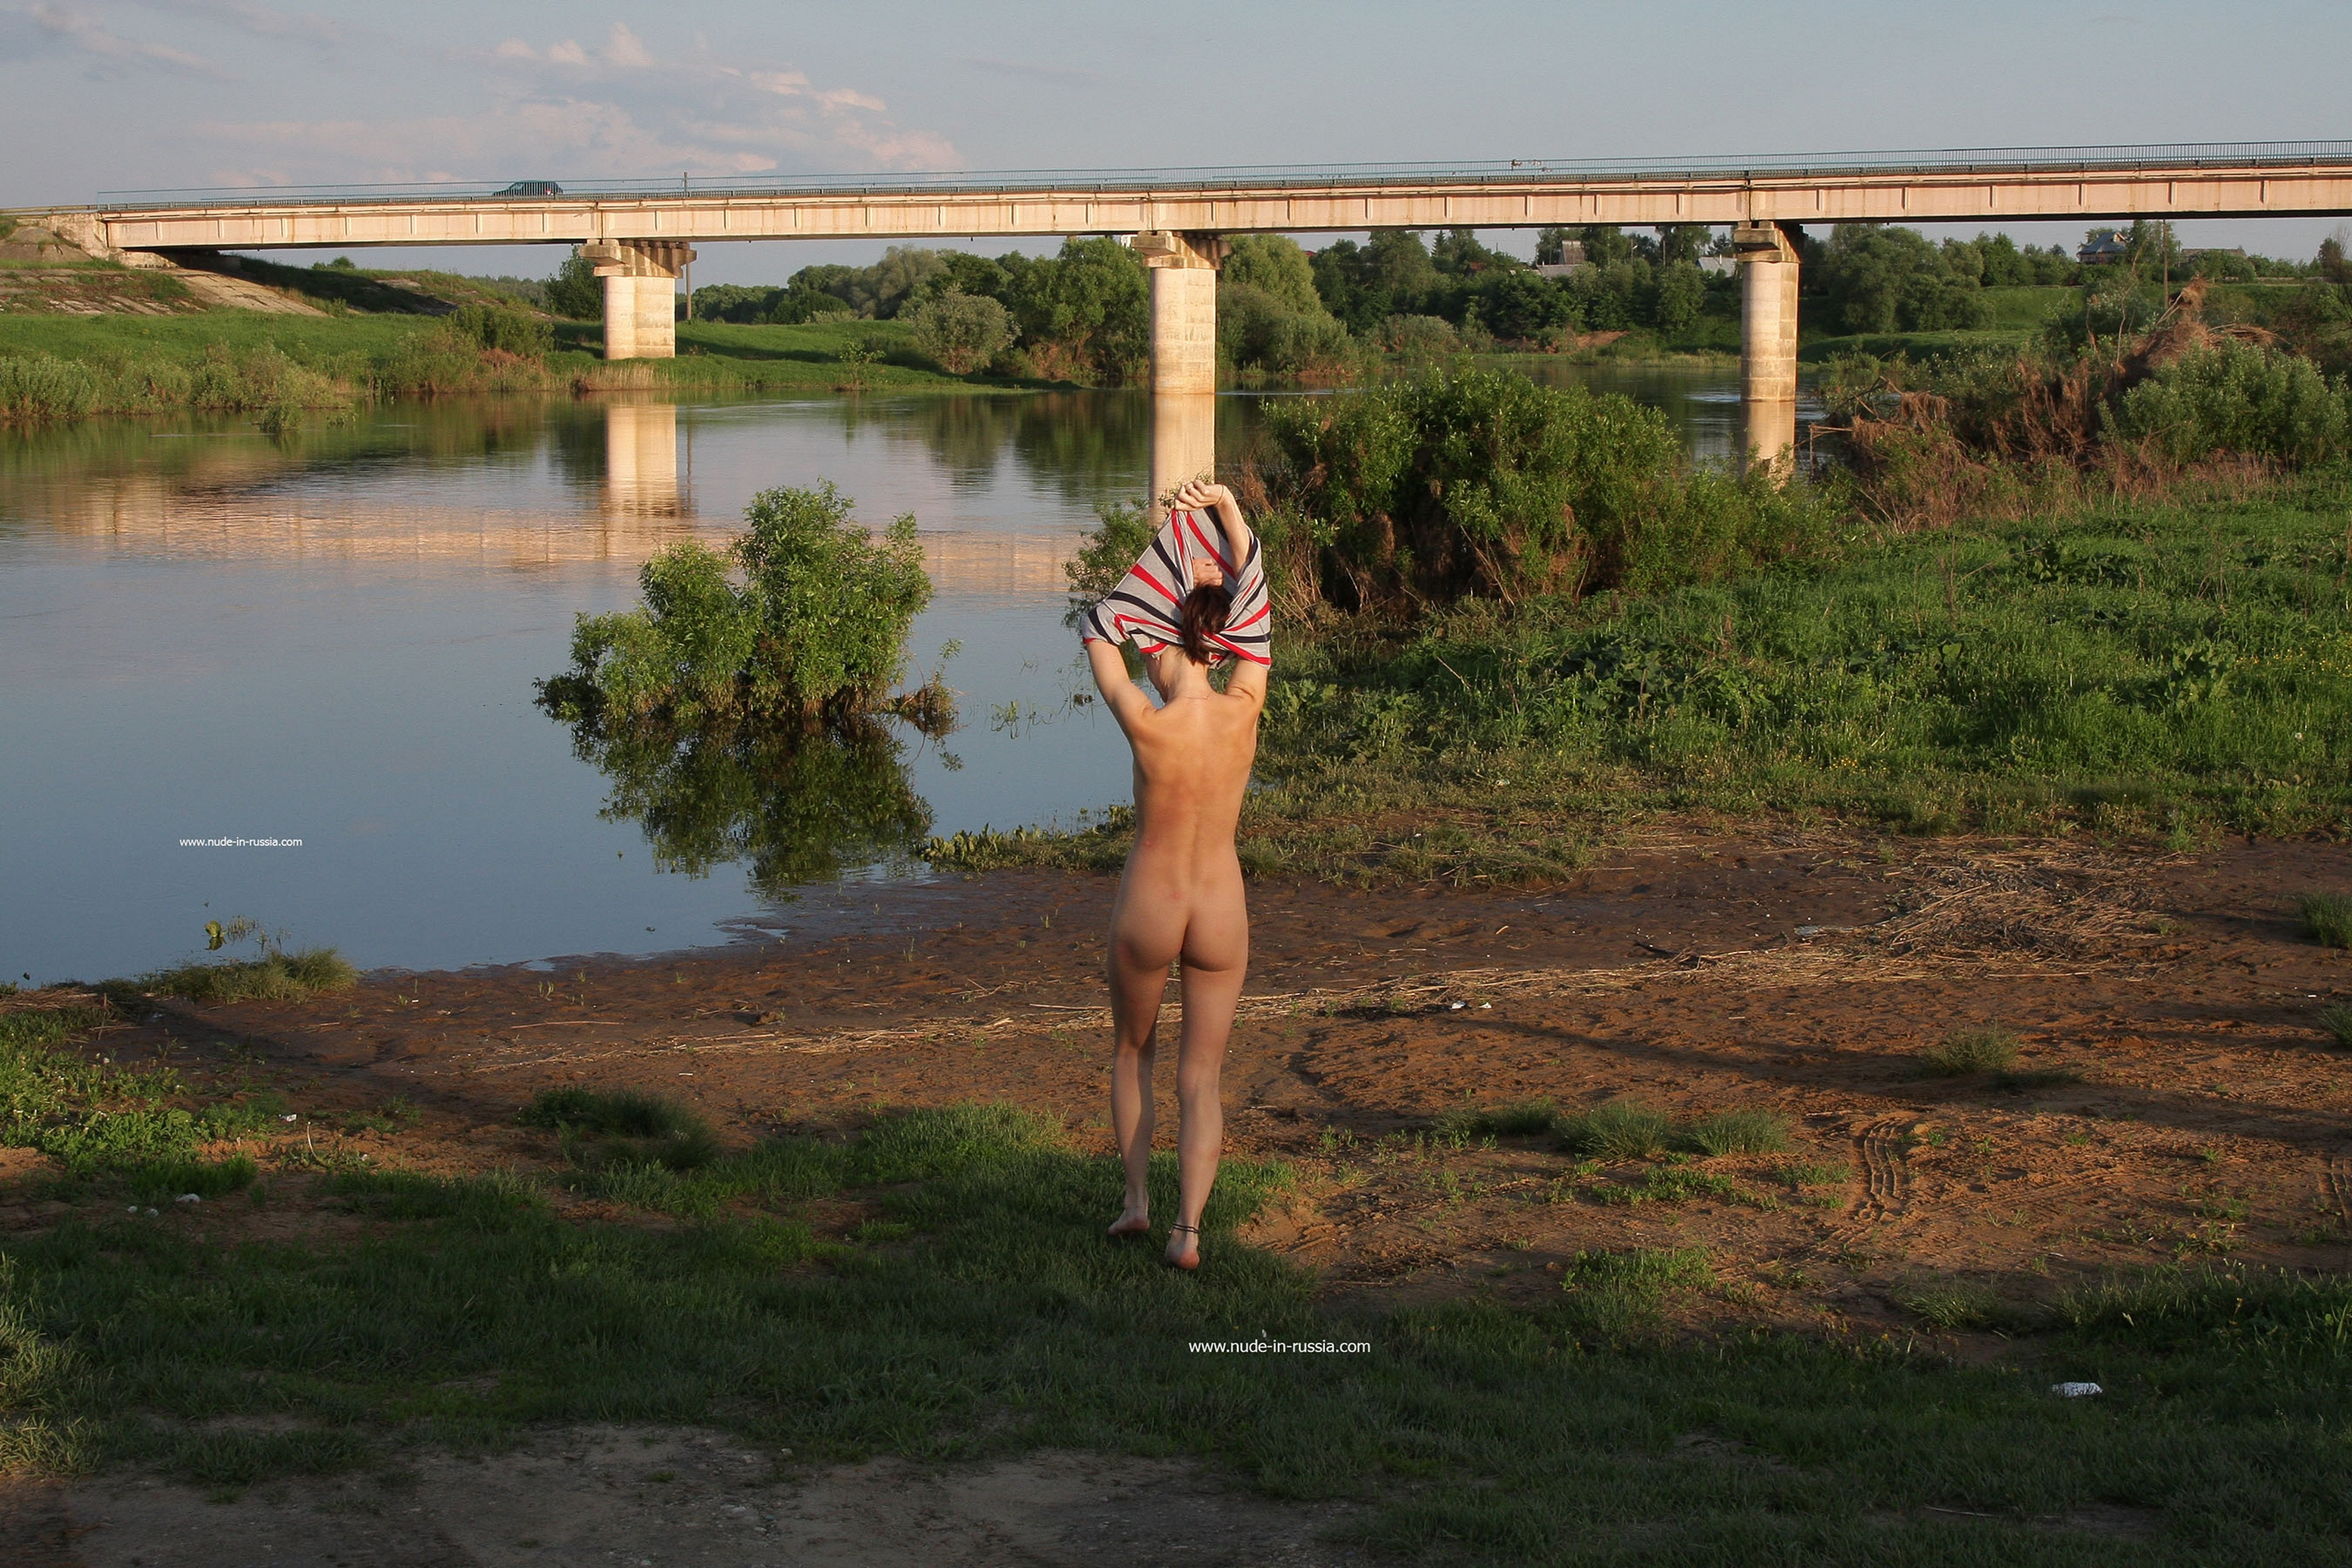 NudeInRussia Daina Splashes In The Nerl River - 貼圖 - 歐美寫真 -